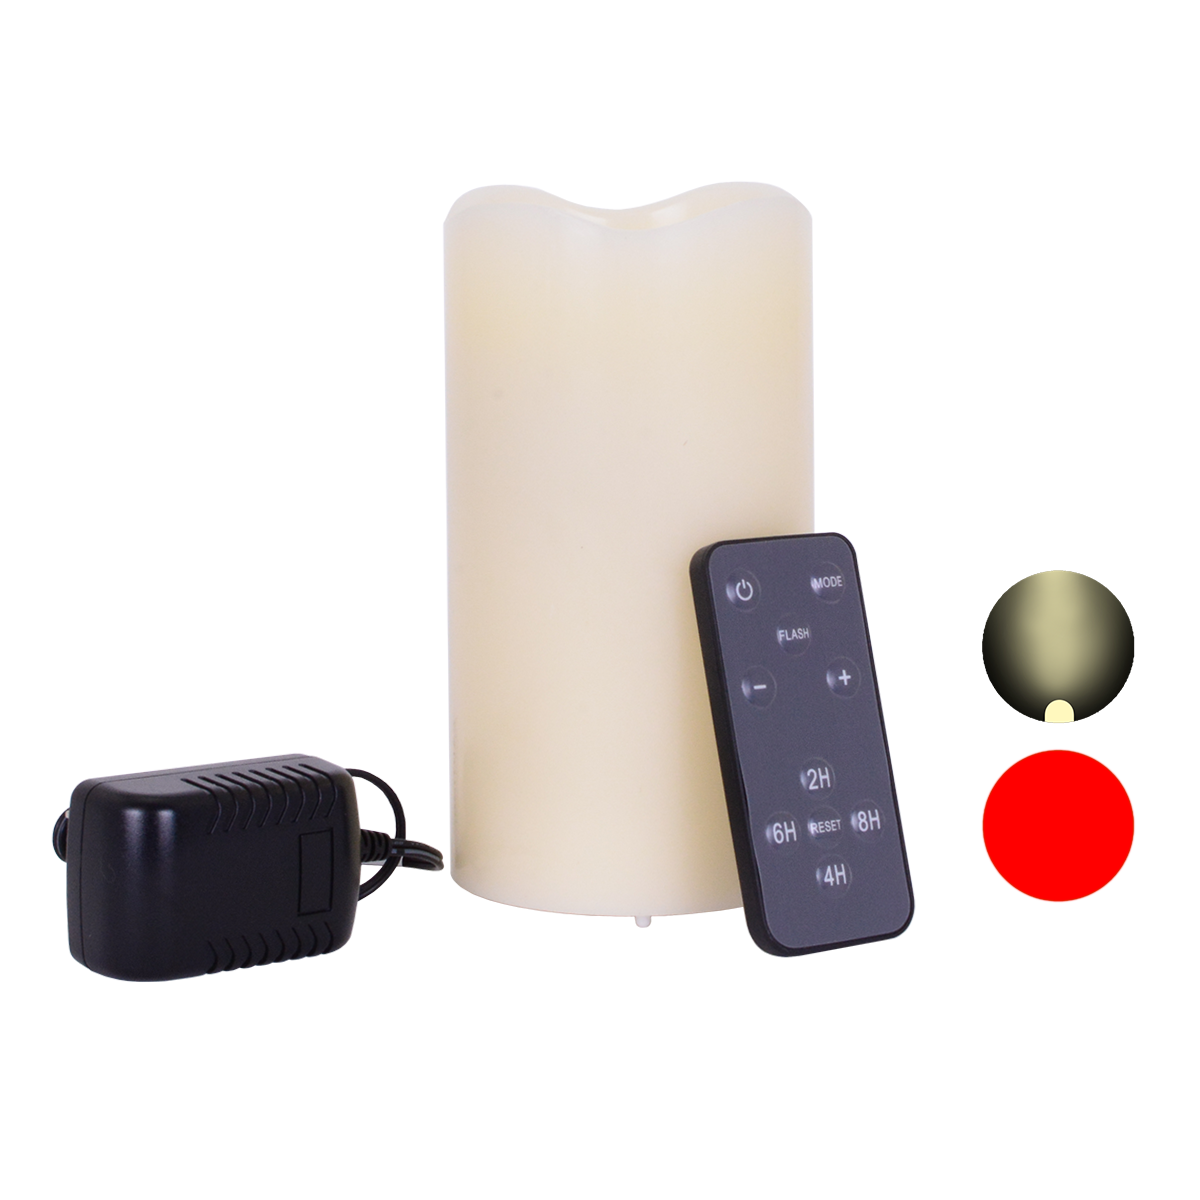 6 Inch Rechargeable Wax Laser and Flickering LED Candle